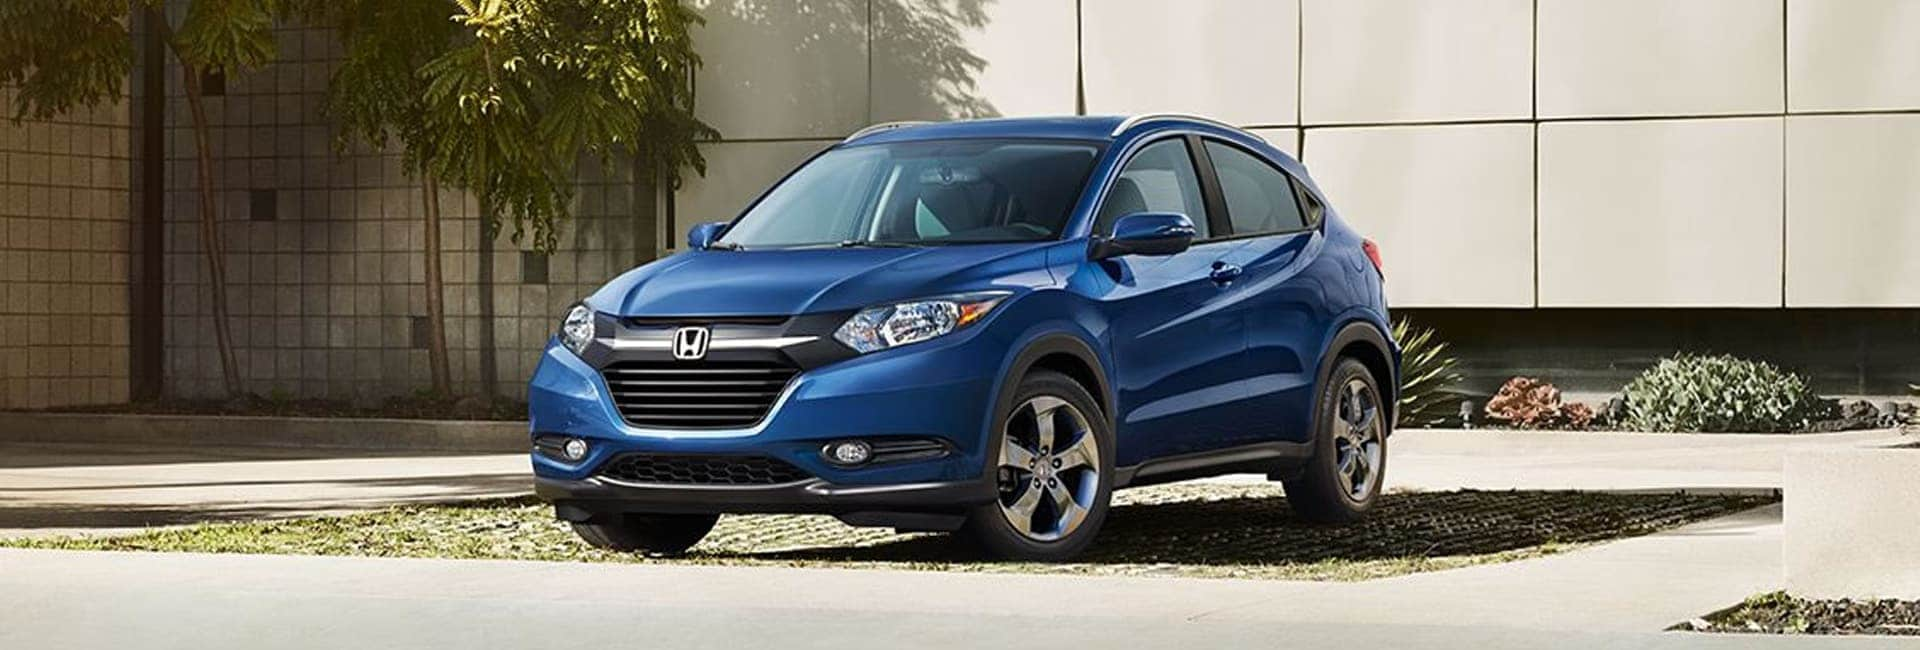 New Honda HR-V Exterior Off Road